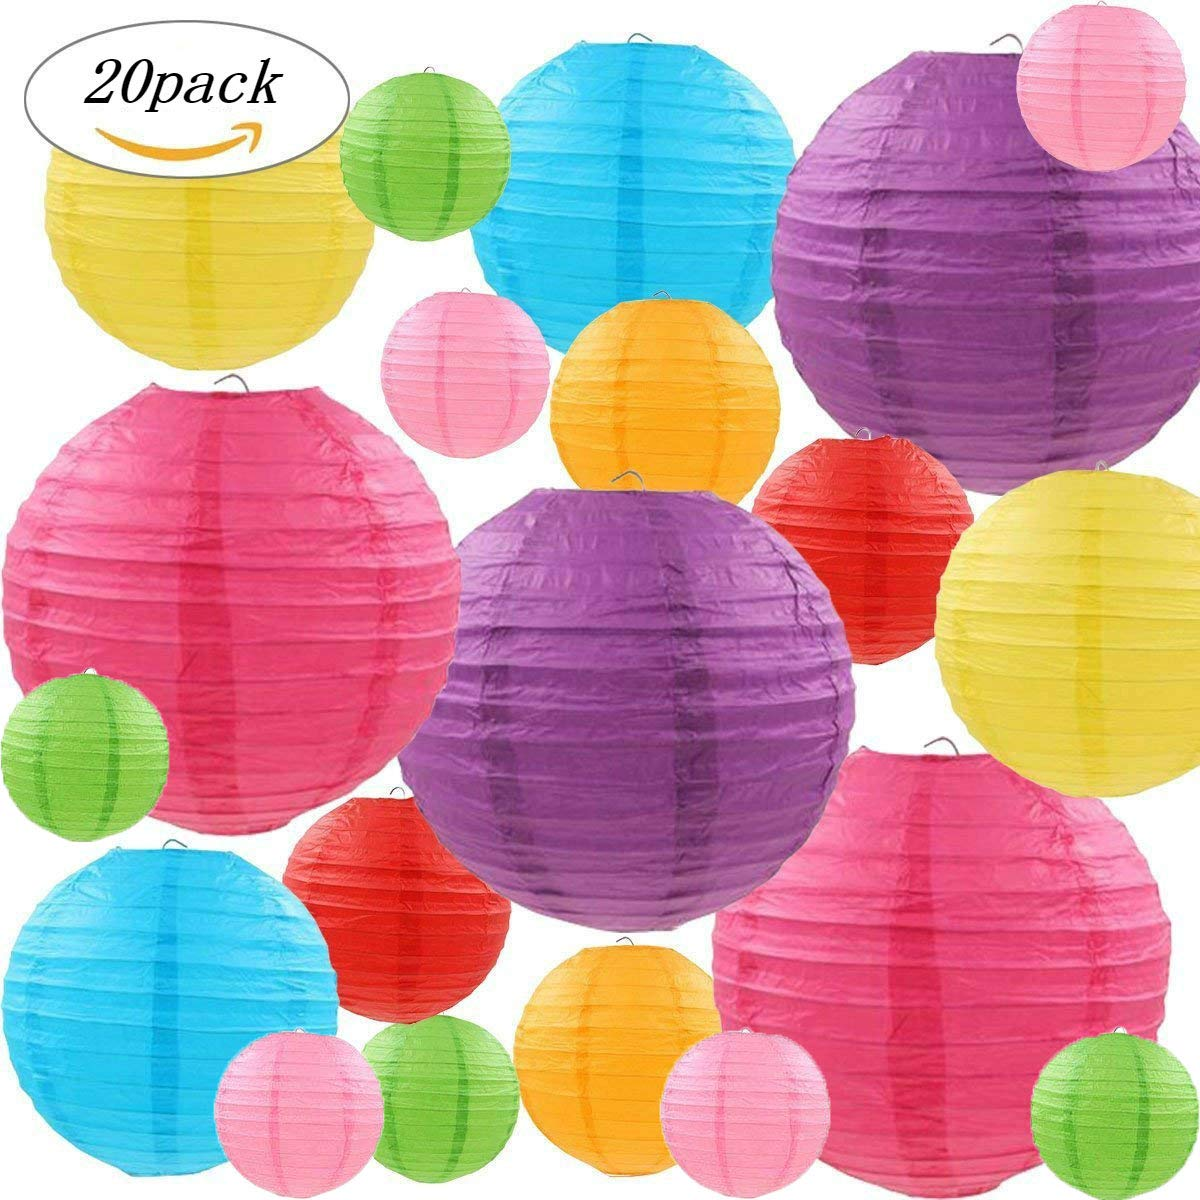 20 PCS Paper Lanterns with Assorted Colors and Sizes, Paper Hanging ...